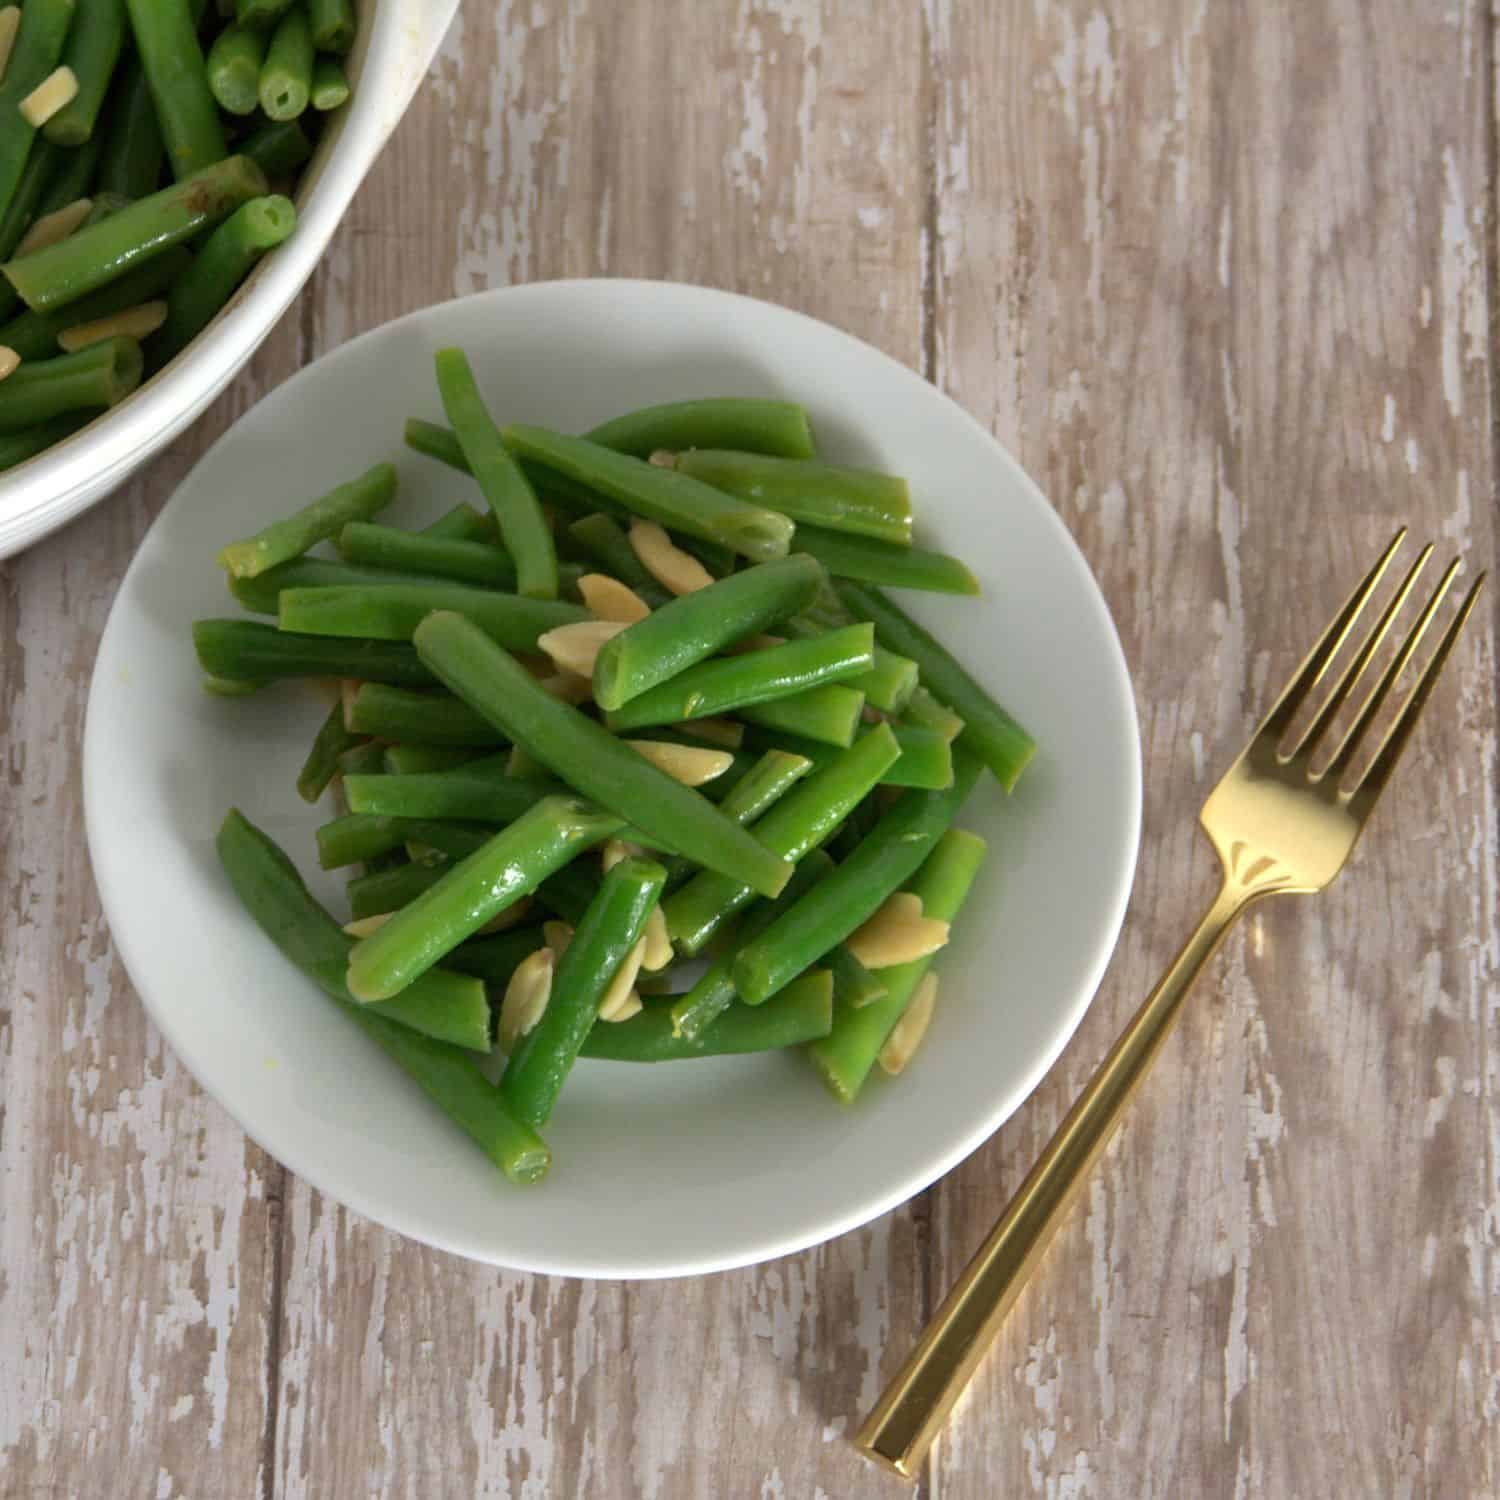 Ban boring green beans! Meyer Lemon Green Beans with Almonds - healthy and so easy to make! #paleo #primal #Whole30